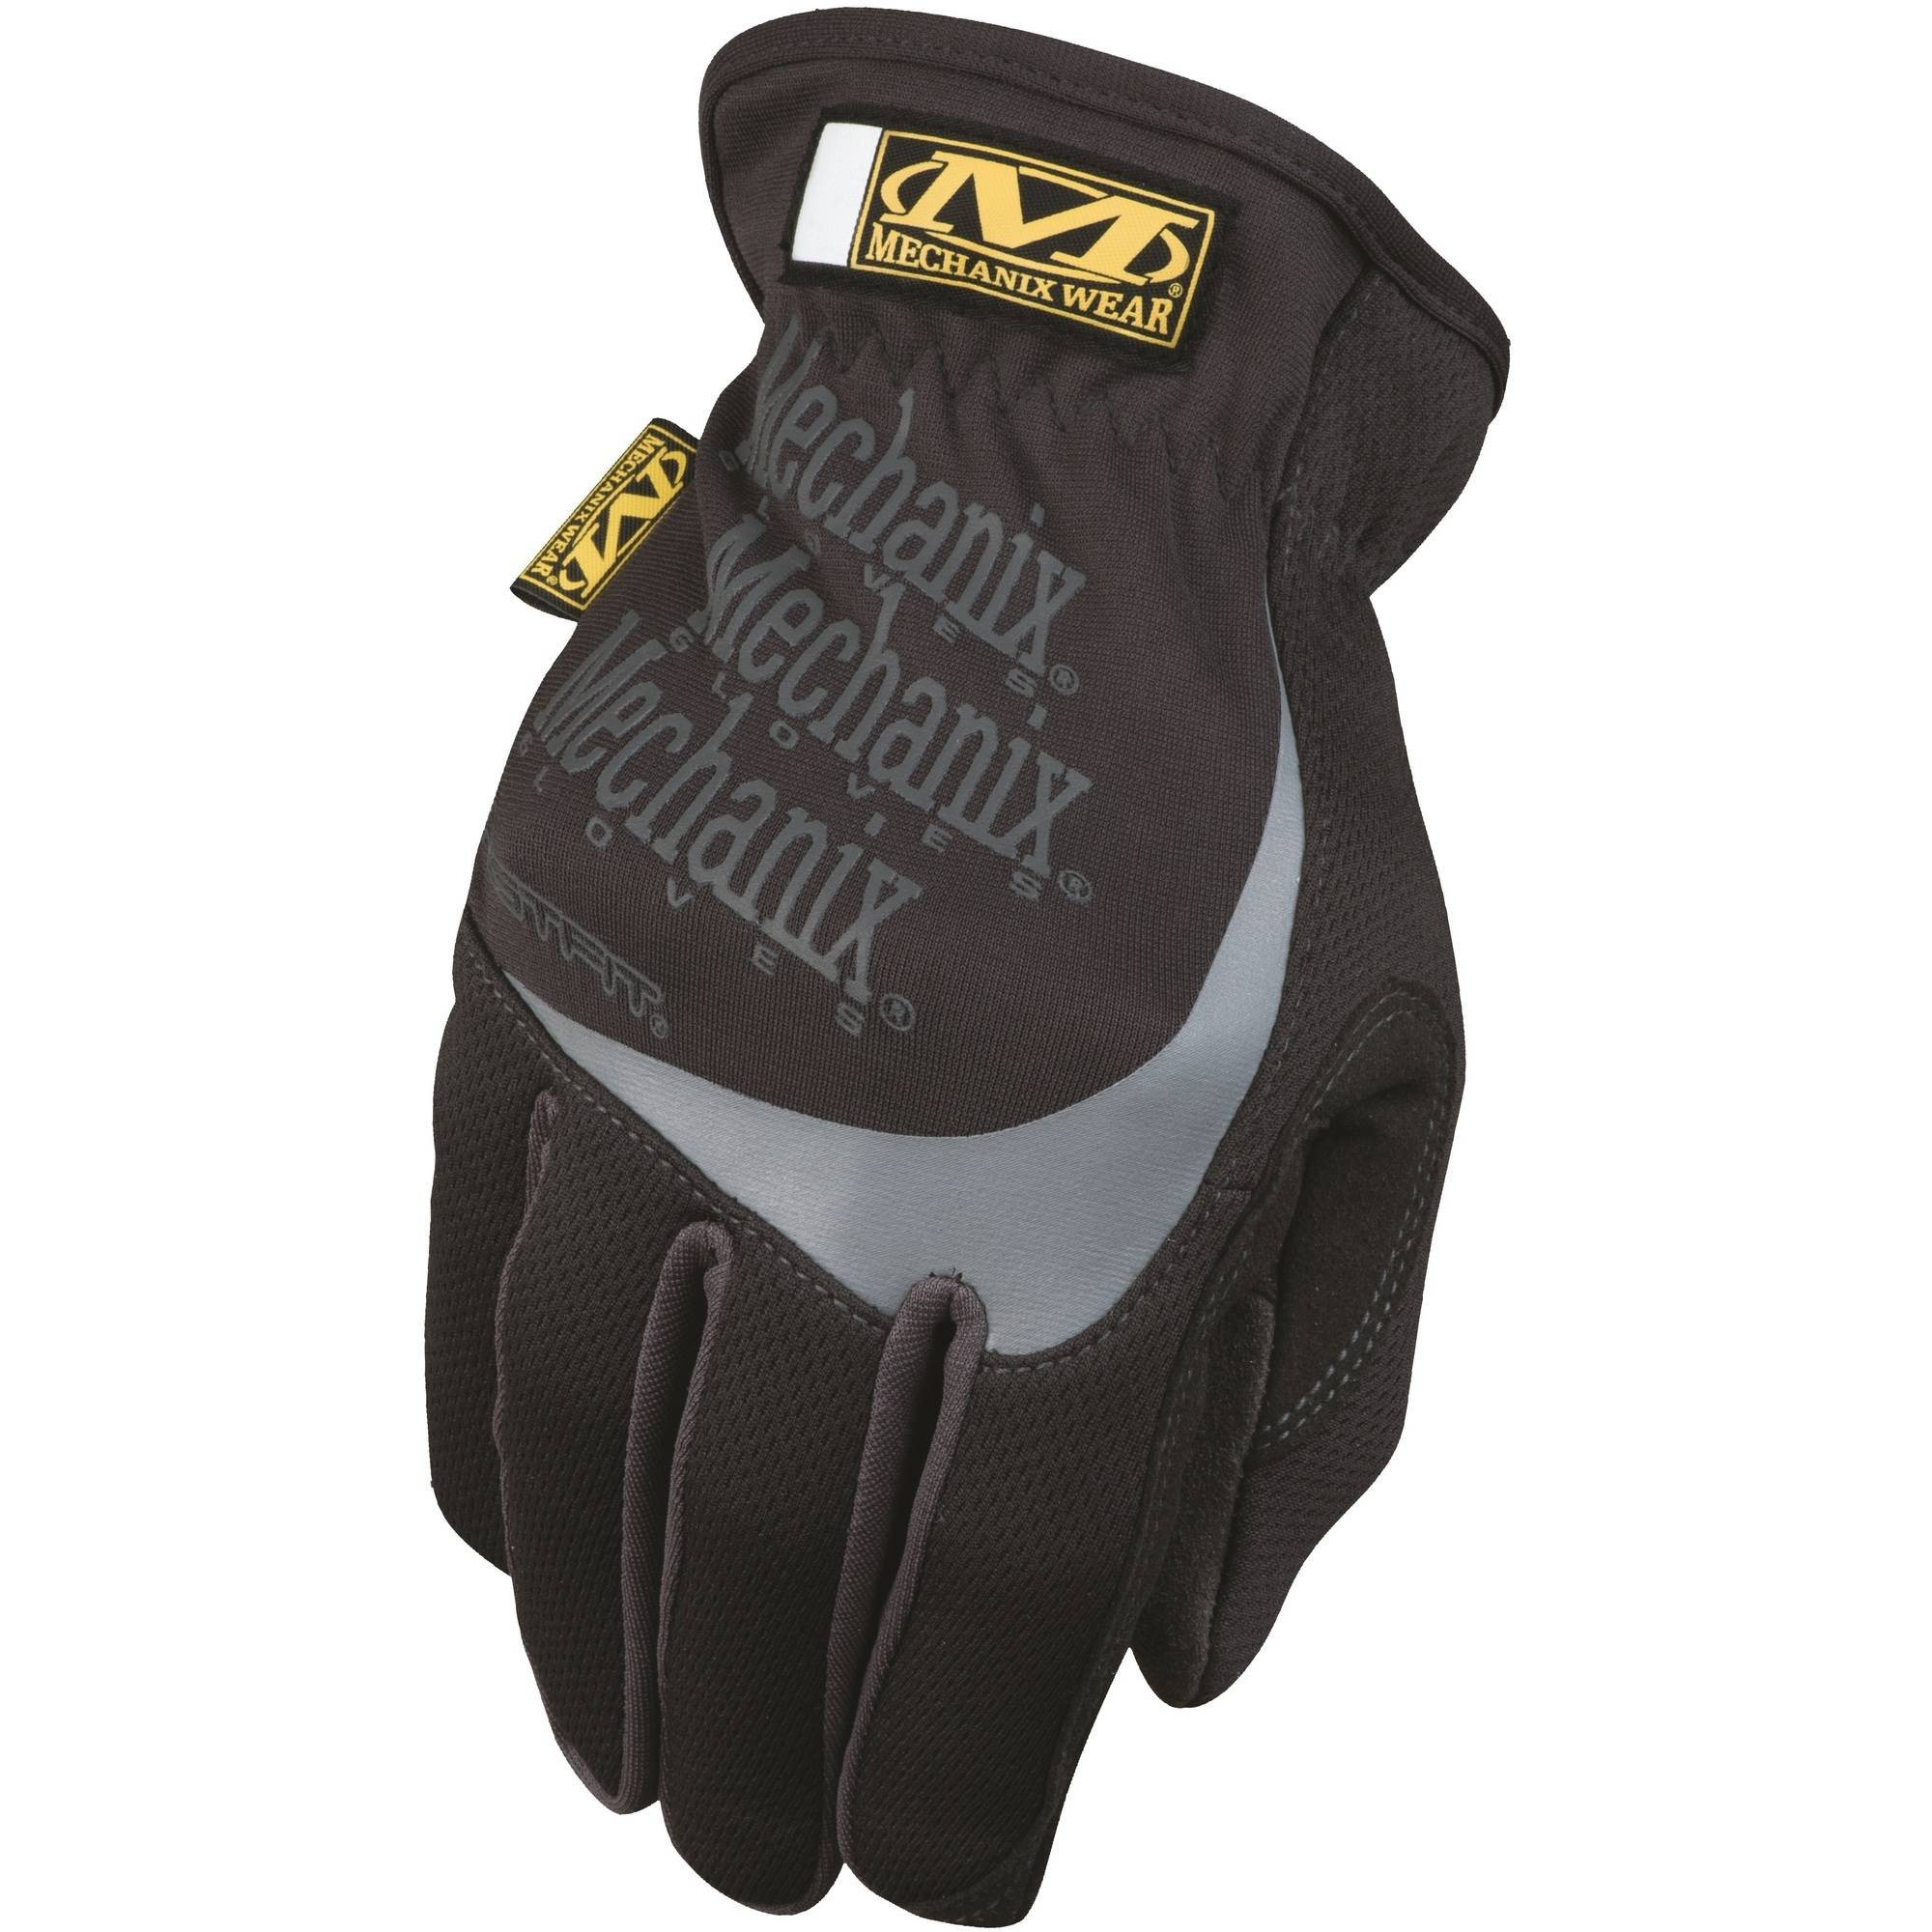 Mechanix Wear FastFit Glove, Black, Size Medium